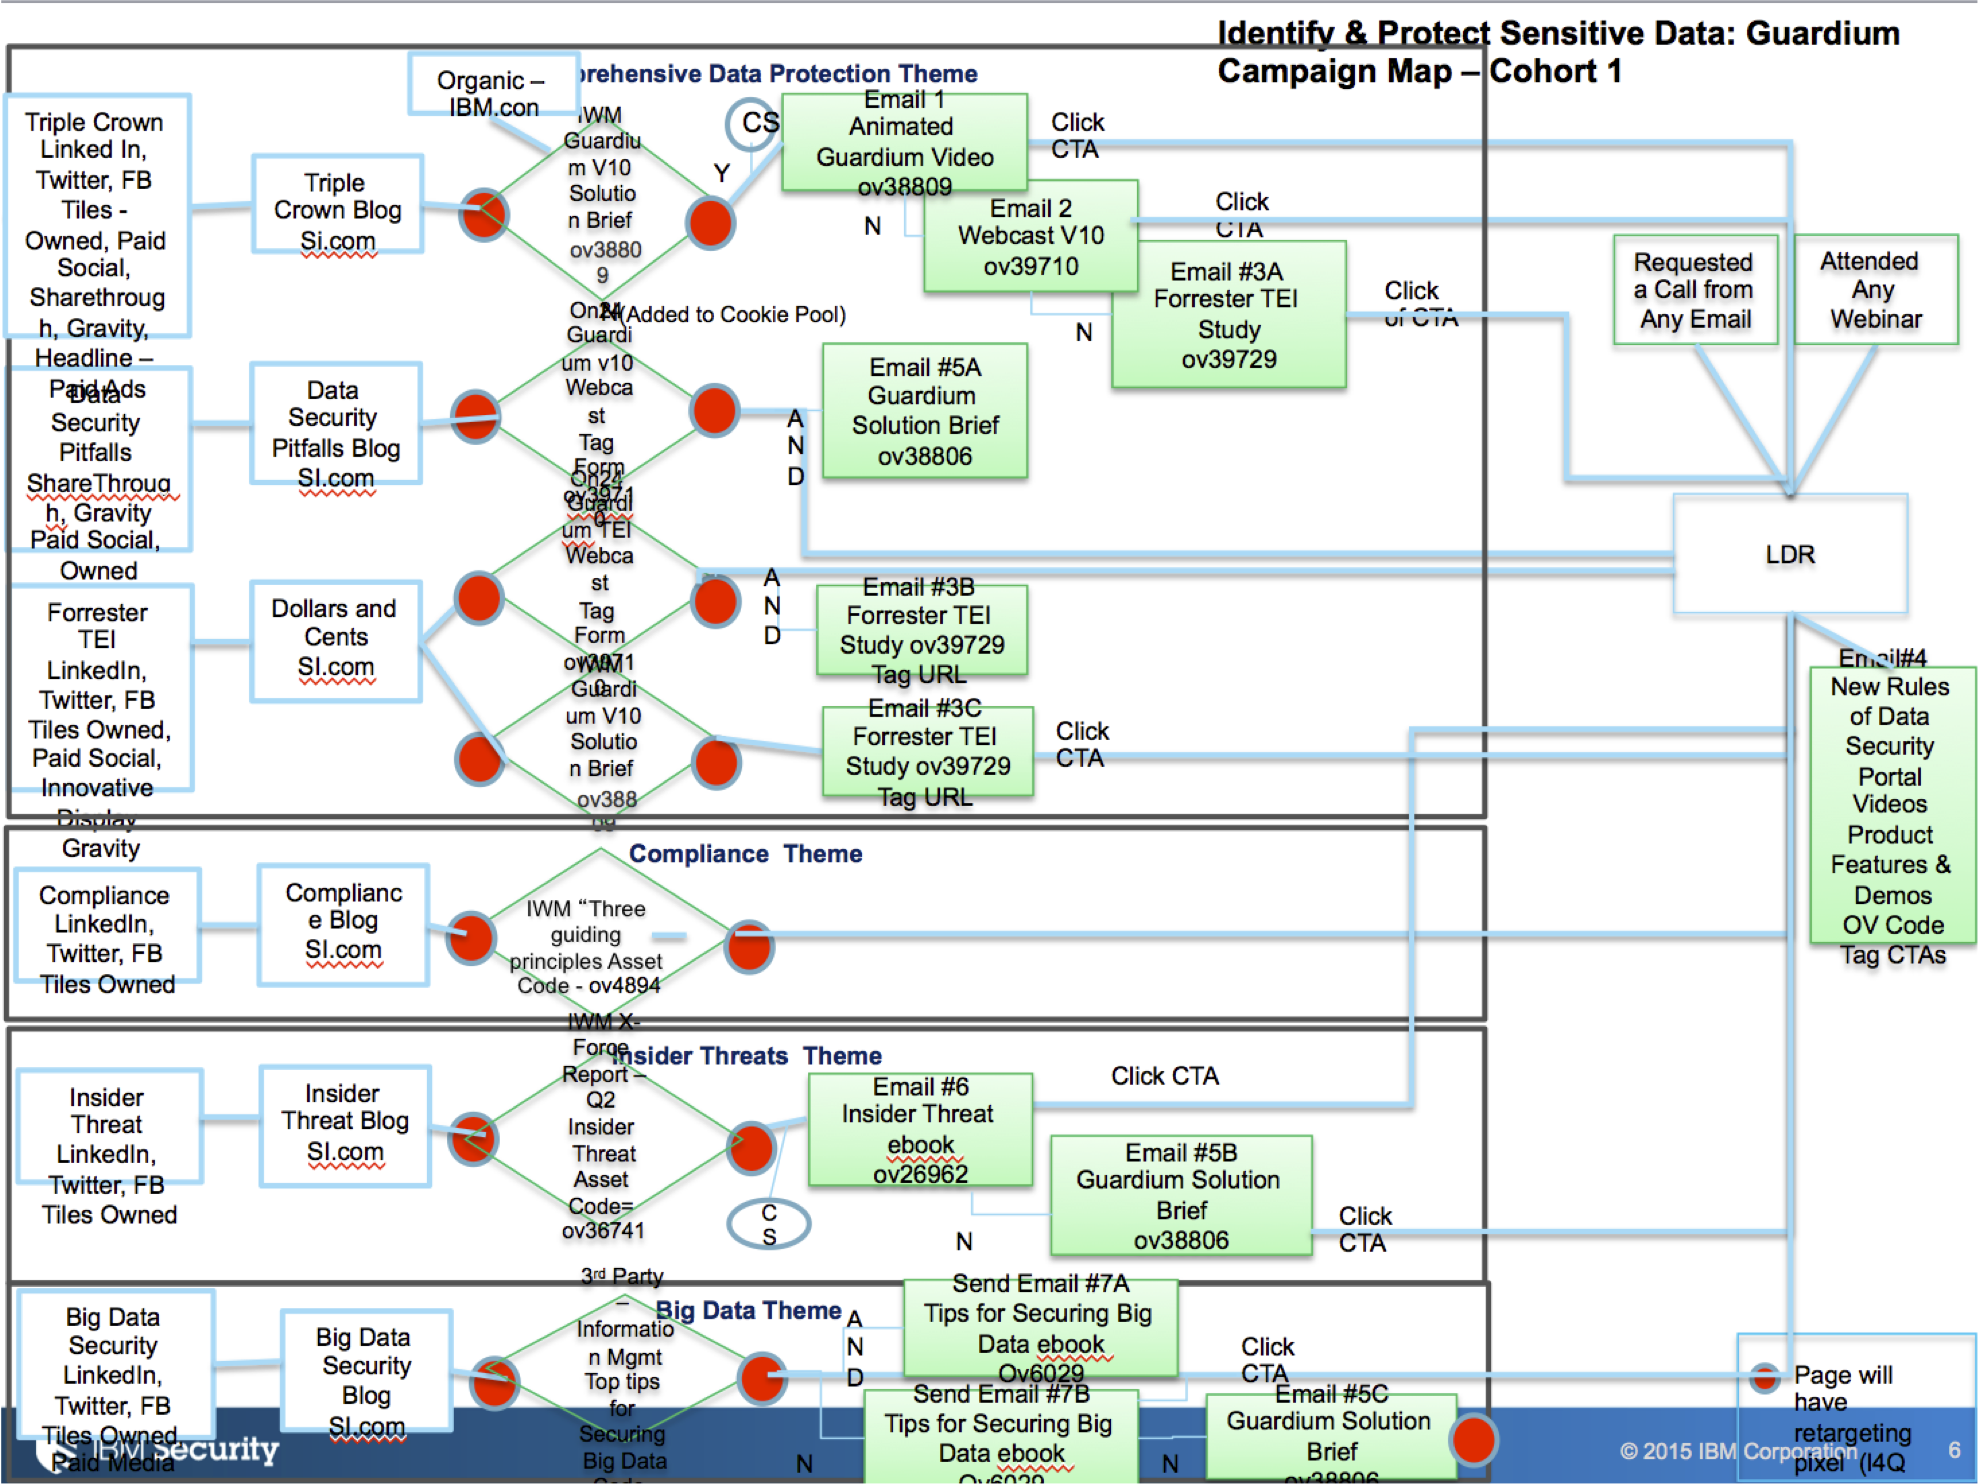 Powerpoint version of a logic map